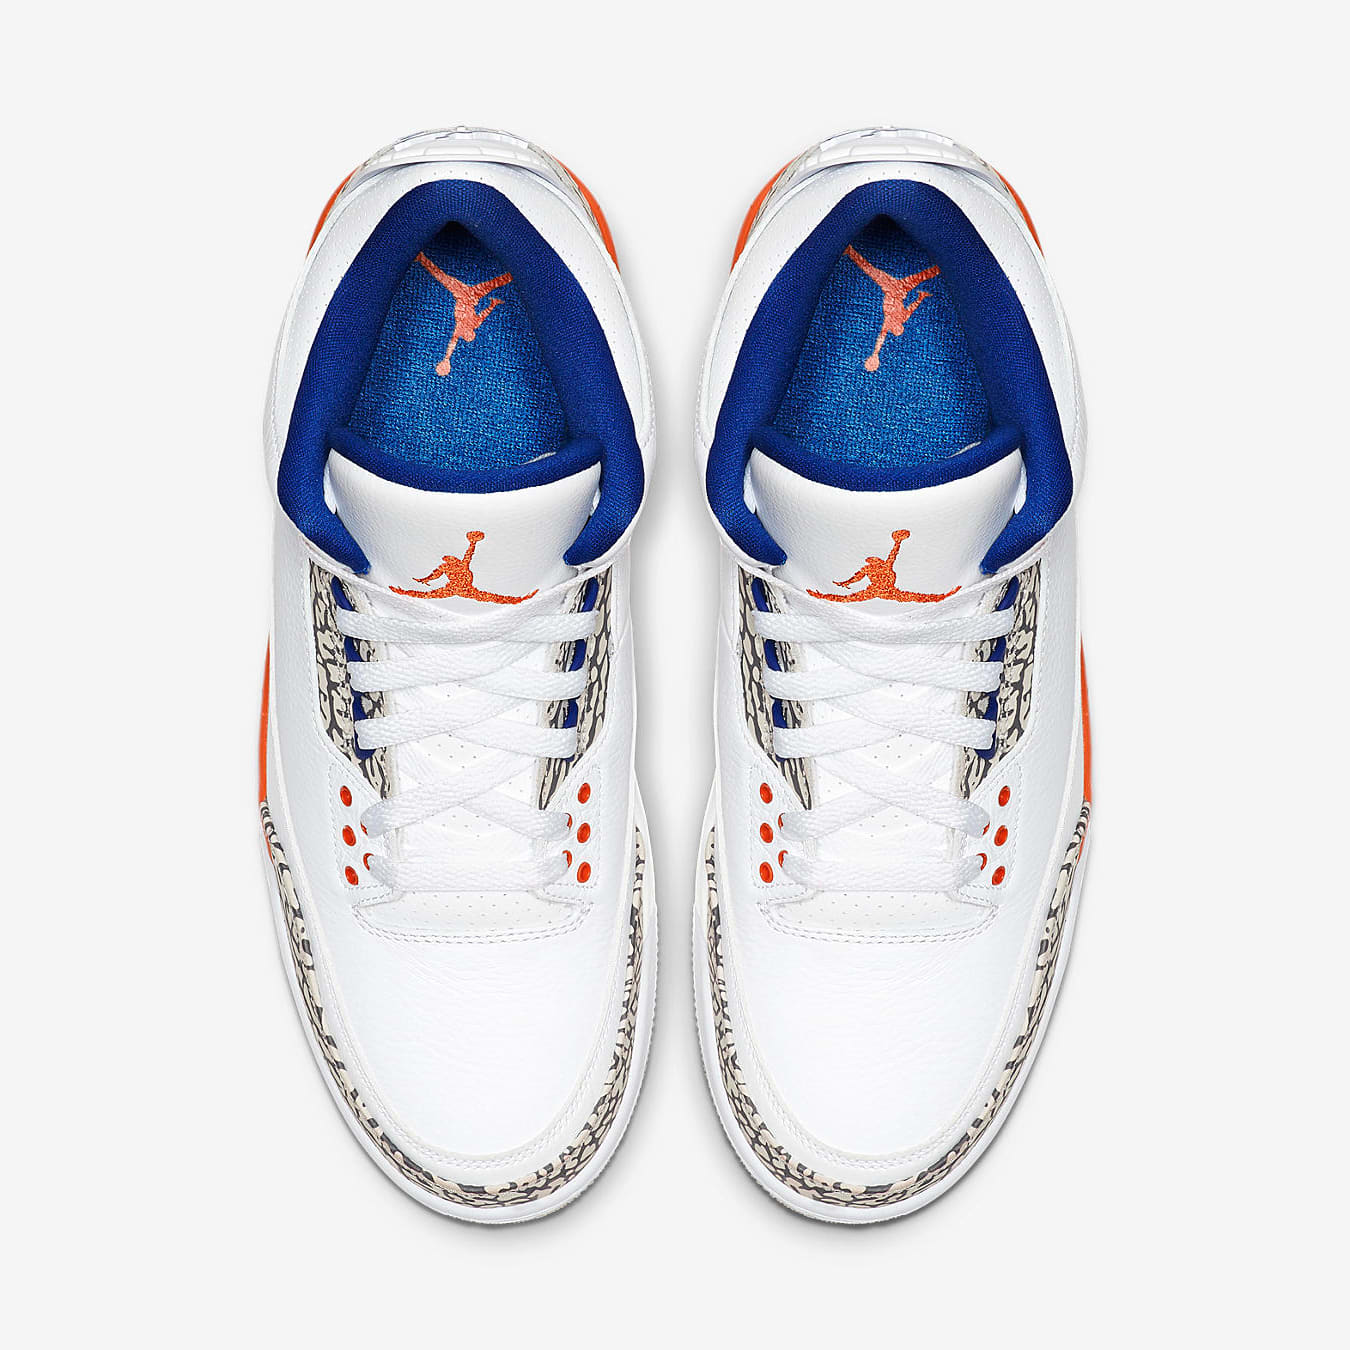 Nike Air Jordan III Retro 'Knicks' - 136064-148